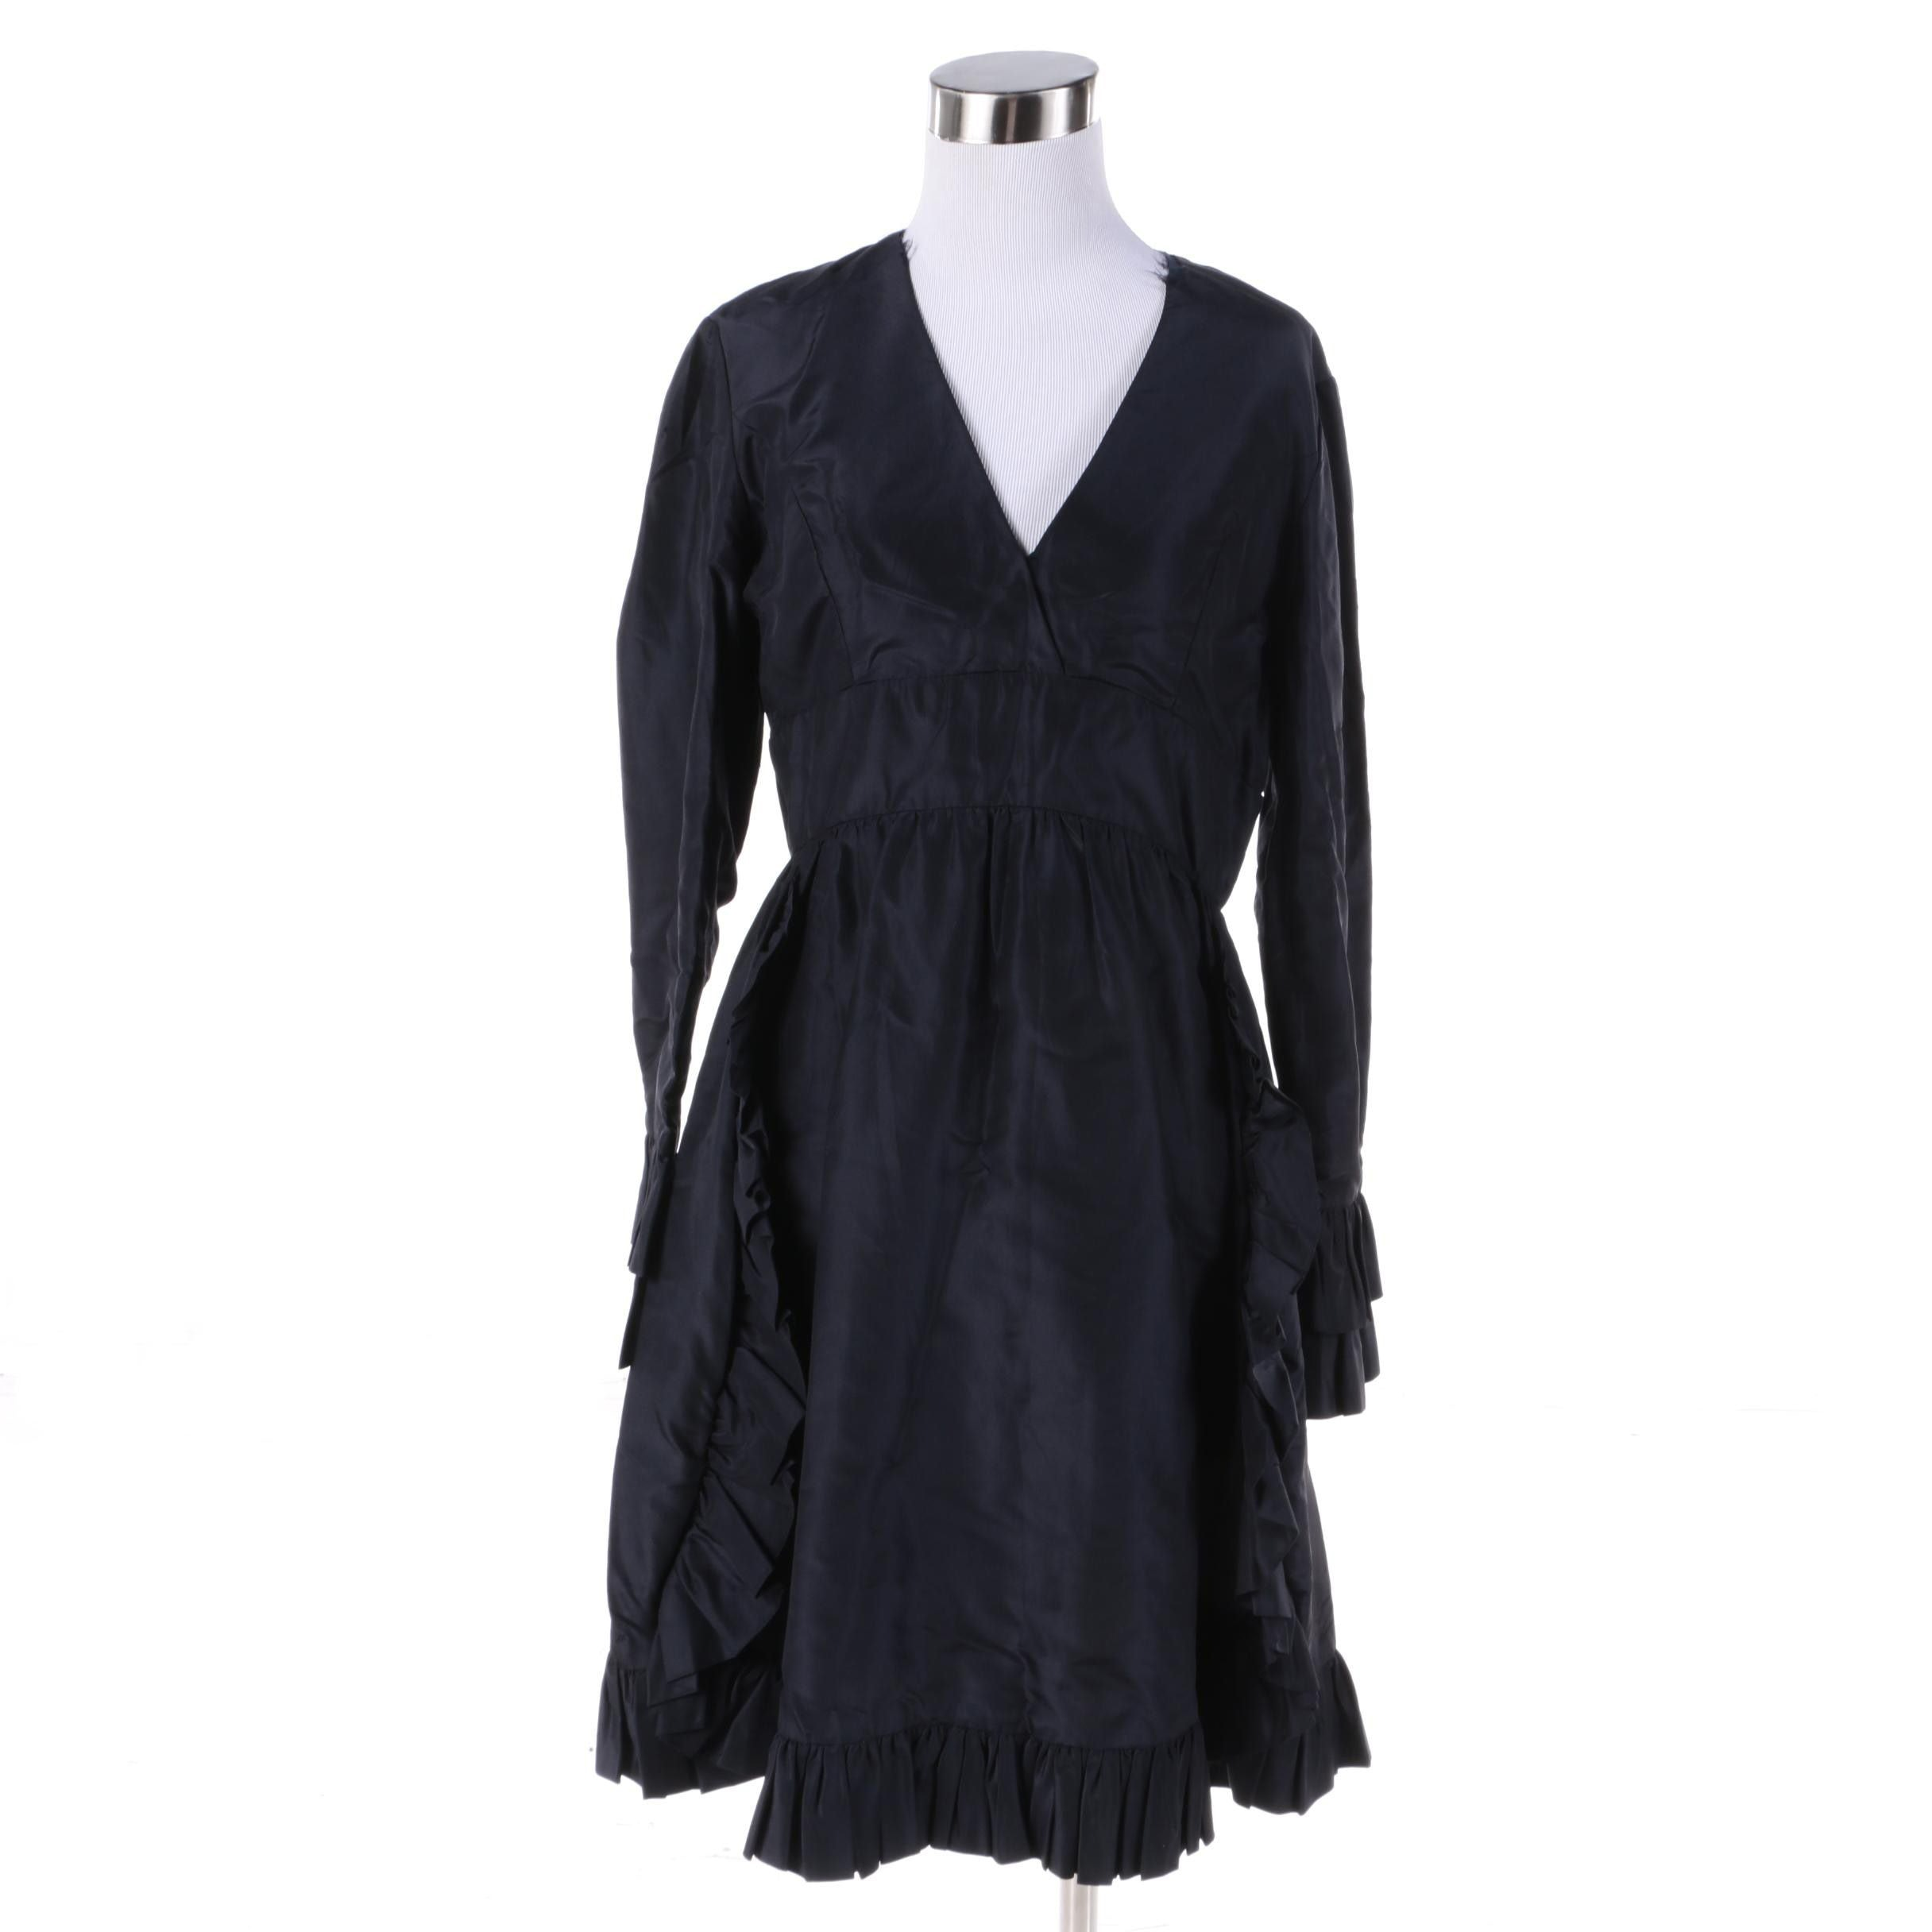 1960s Vintage Elinor Simmons for Malcolm Starr Black Silk Ruffle Cocktail Dress